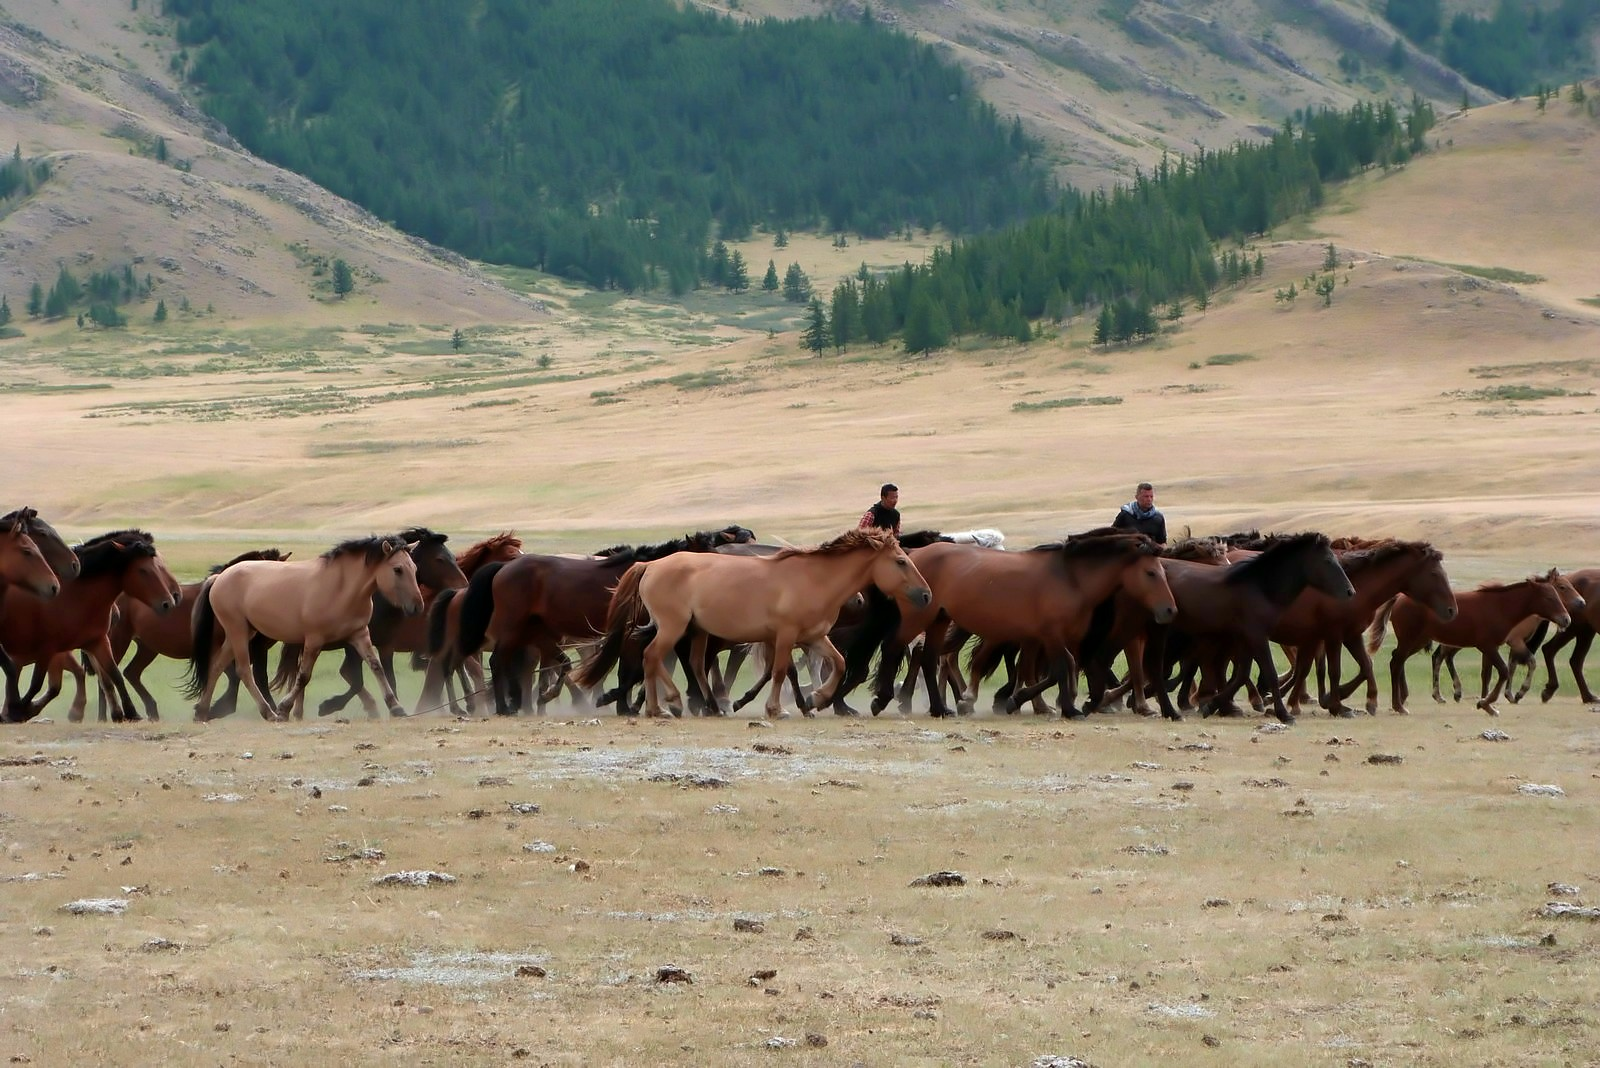 Horse herd in Mongolia